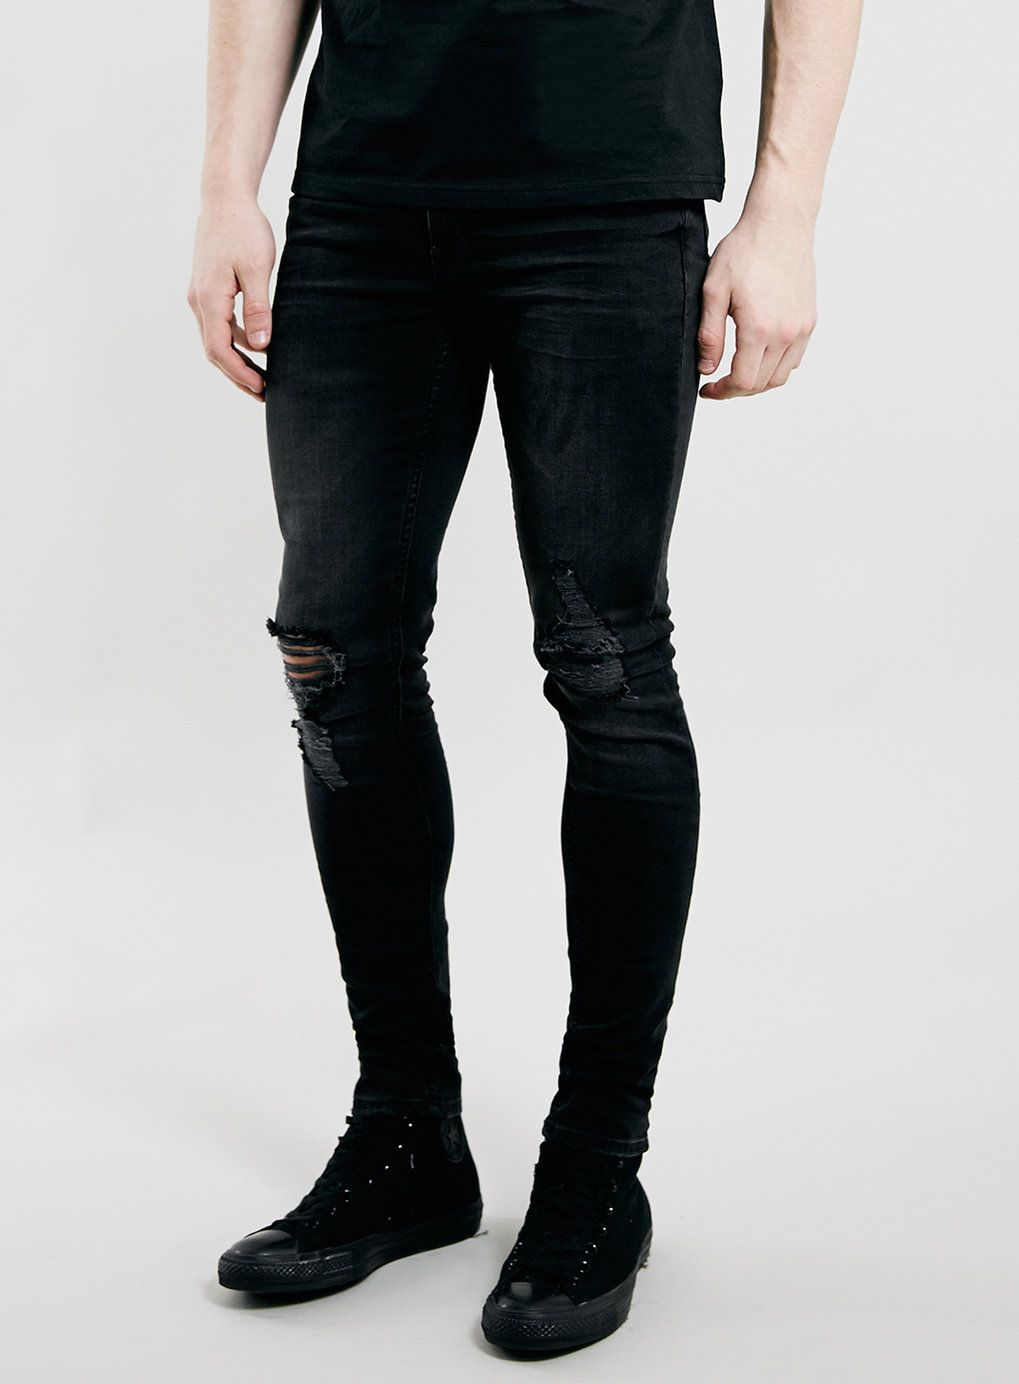 Washed Black Ripped Spray On Skinny Jeans | Search and Sprays